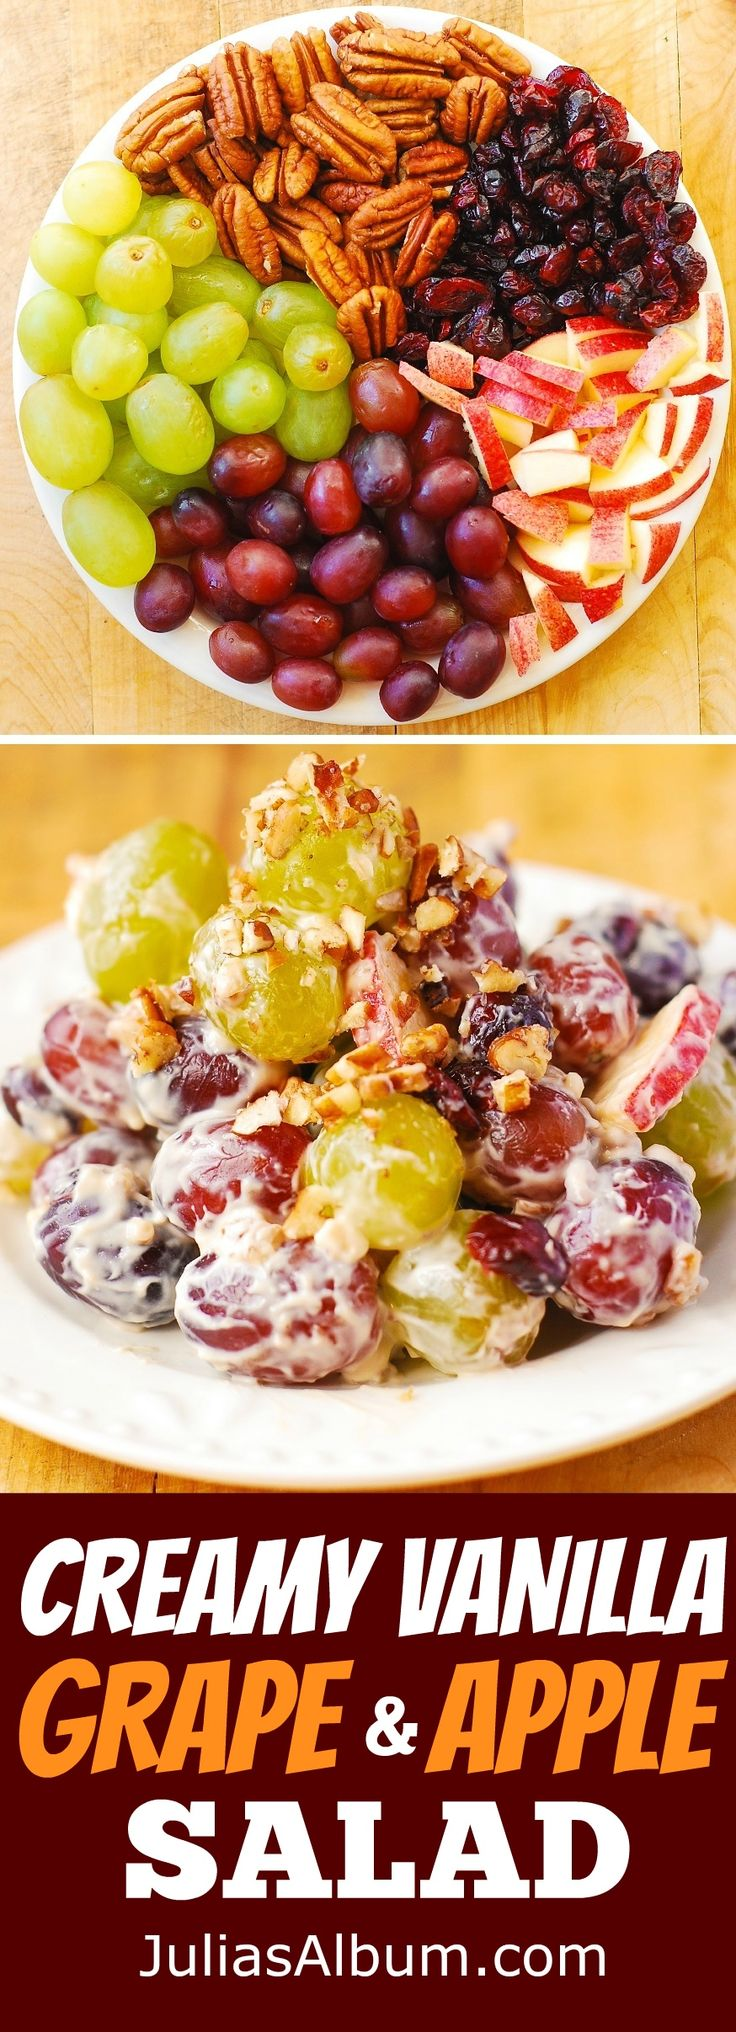 Apple Recipe | Creamy Vanilla Grape & Apple Salad with Cranberries and Pecans